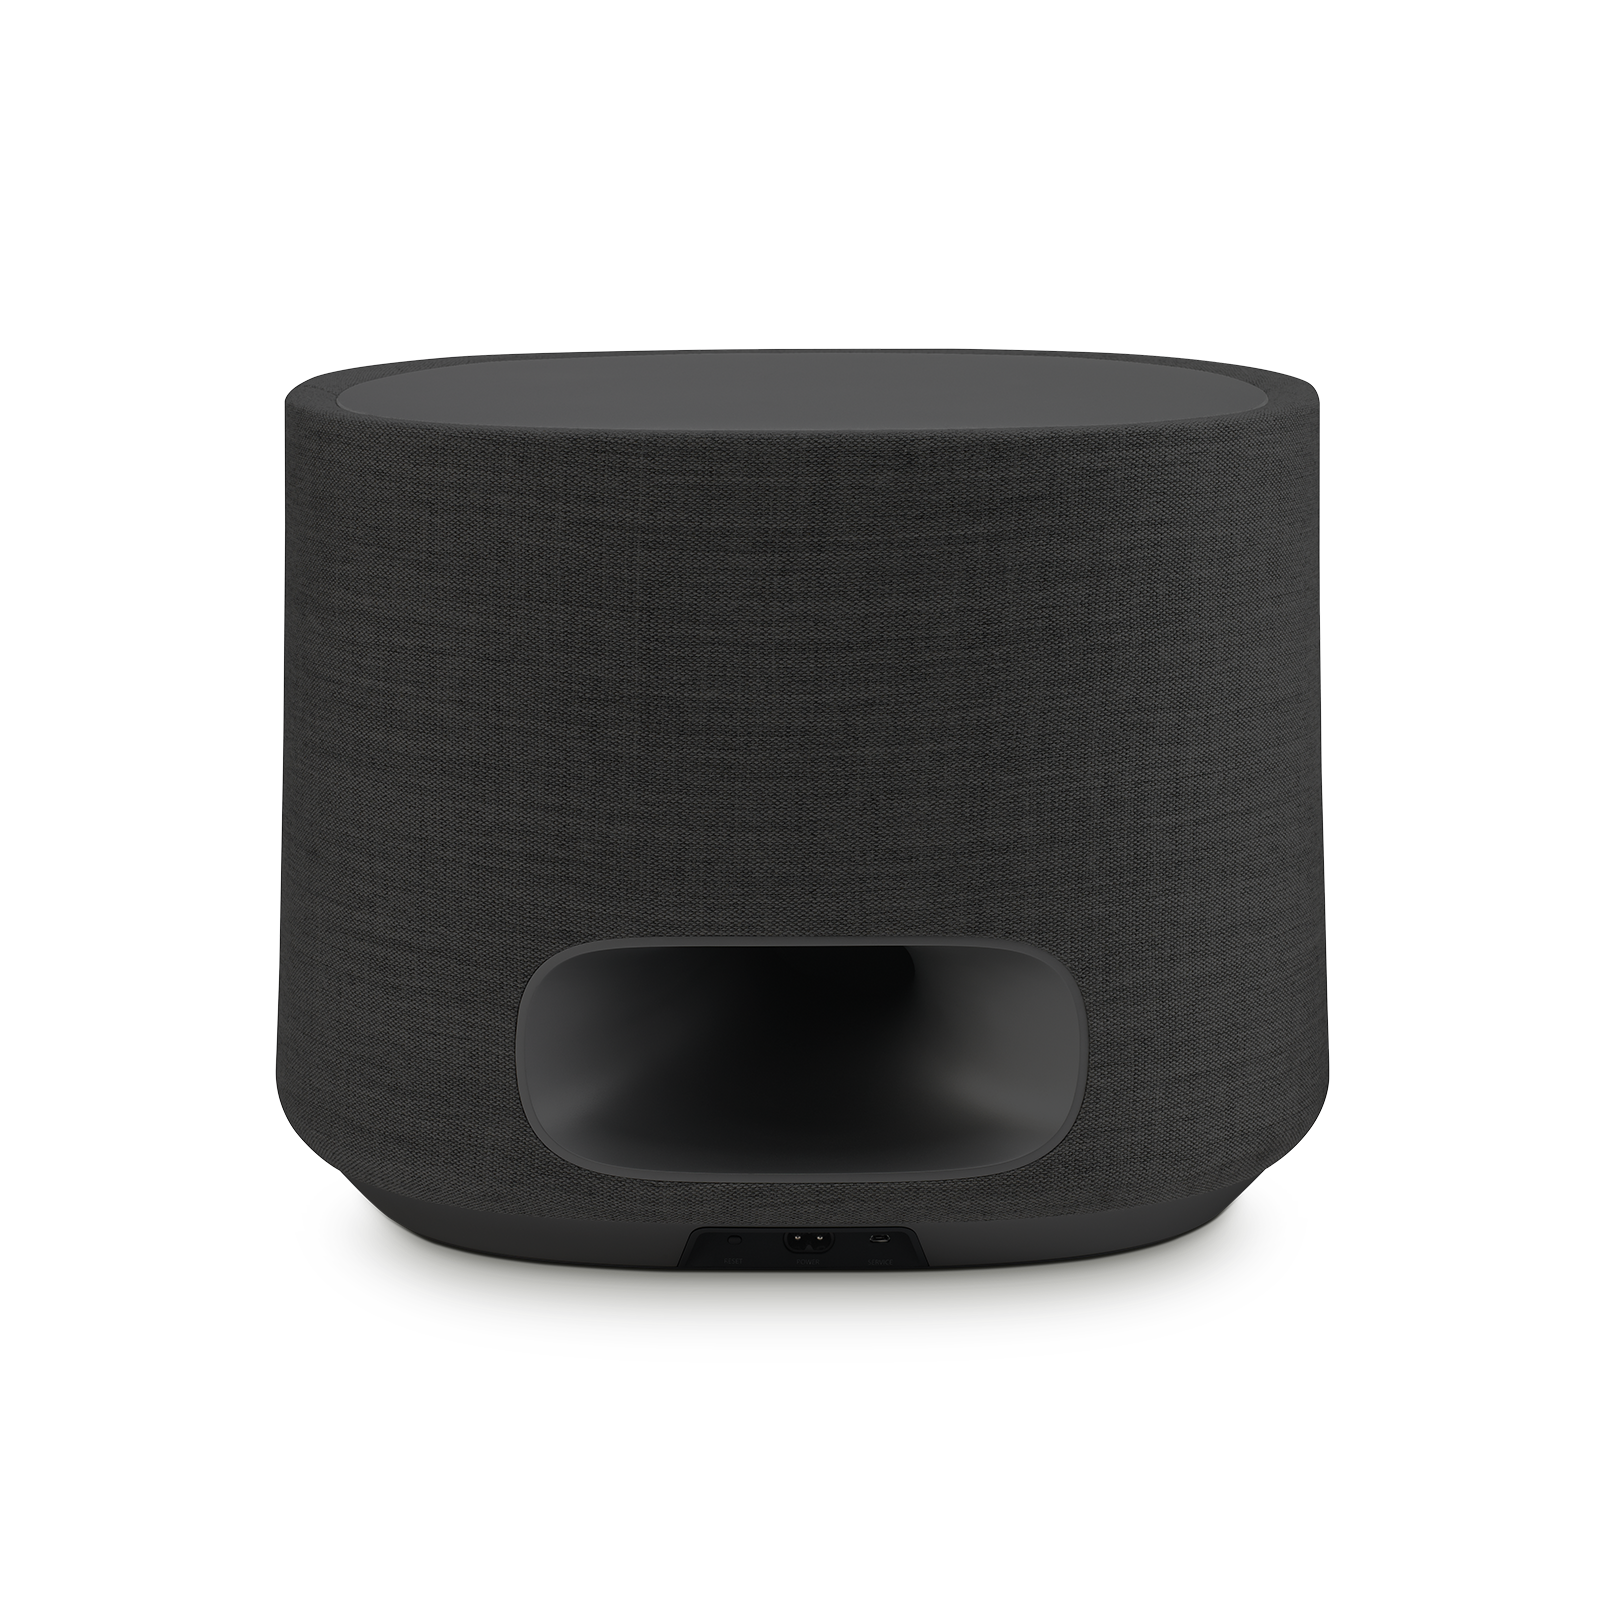 Harman Kardon Citation Sub - Black - Thundering bass for movies and music - Back